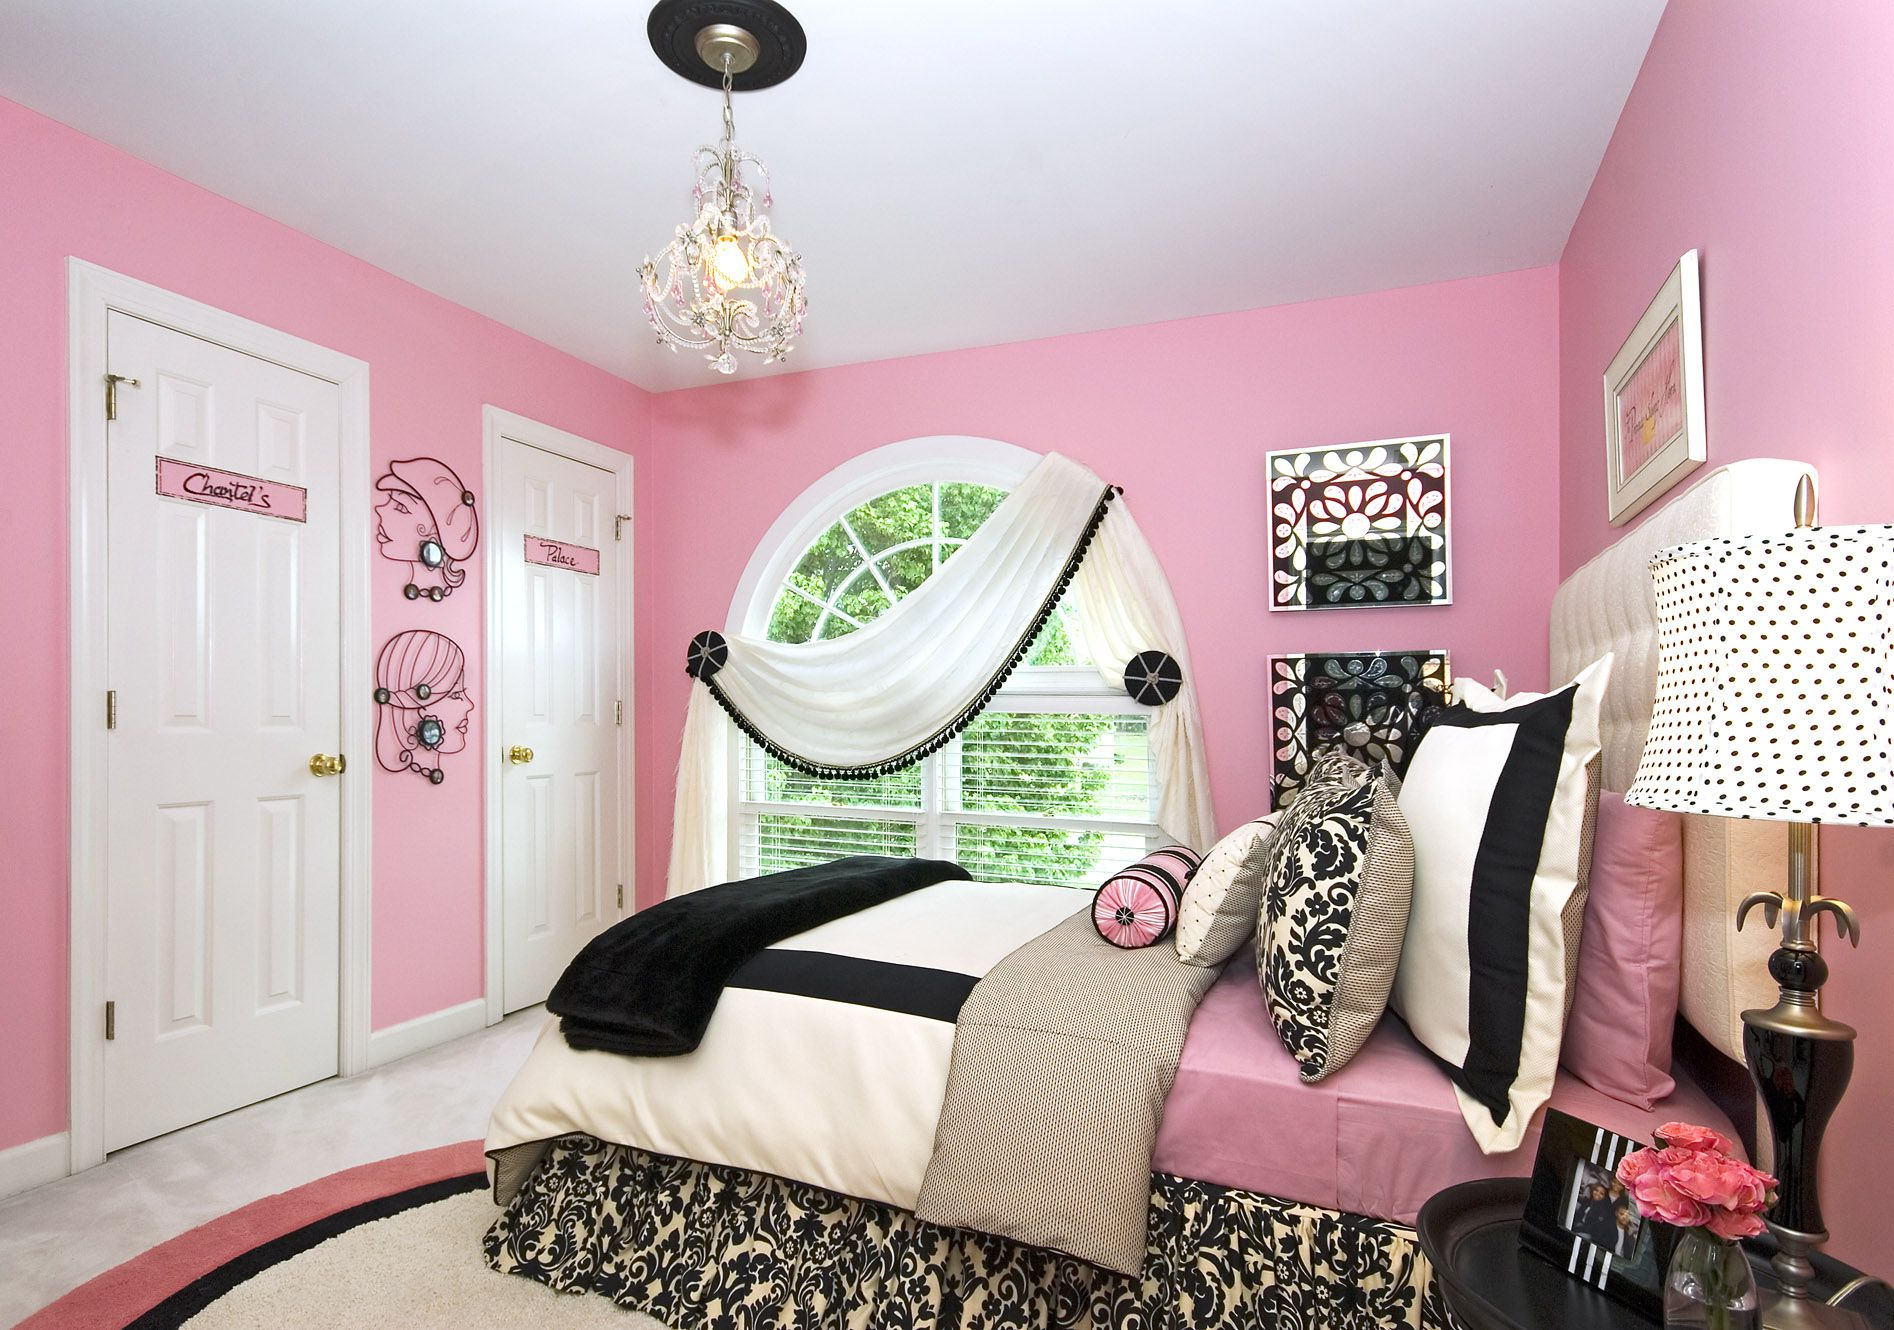 Place Gorgeous Bed Inside Cute S Bedroom Decor With Black Nightstands And Pink Painted Wall